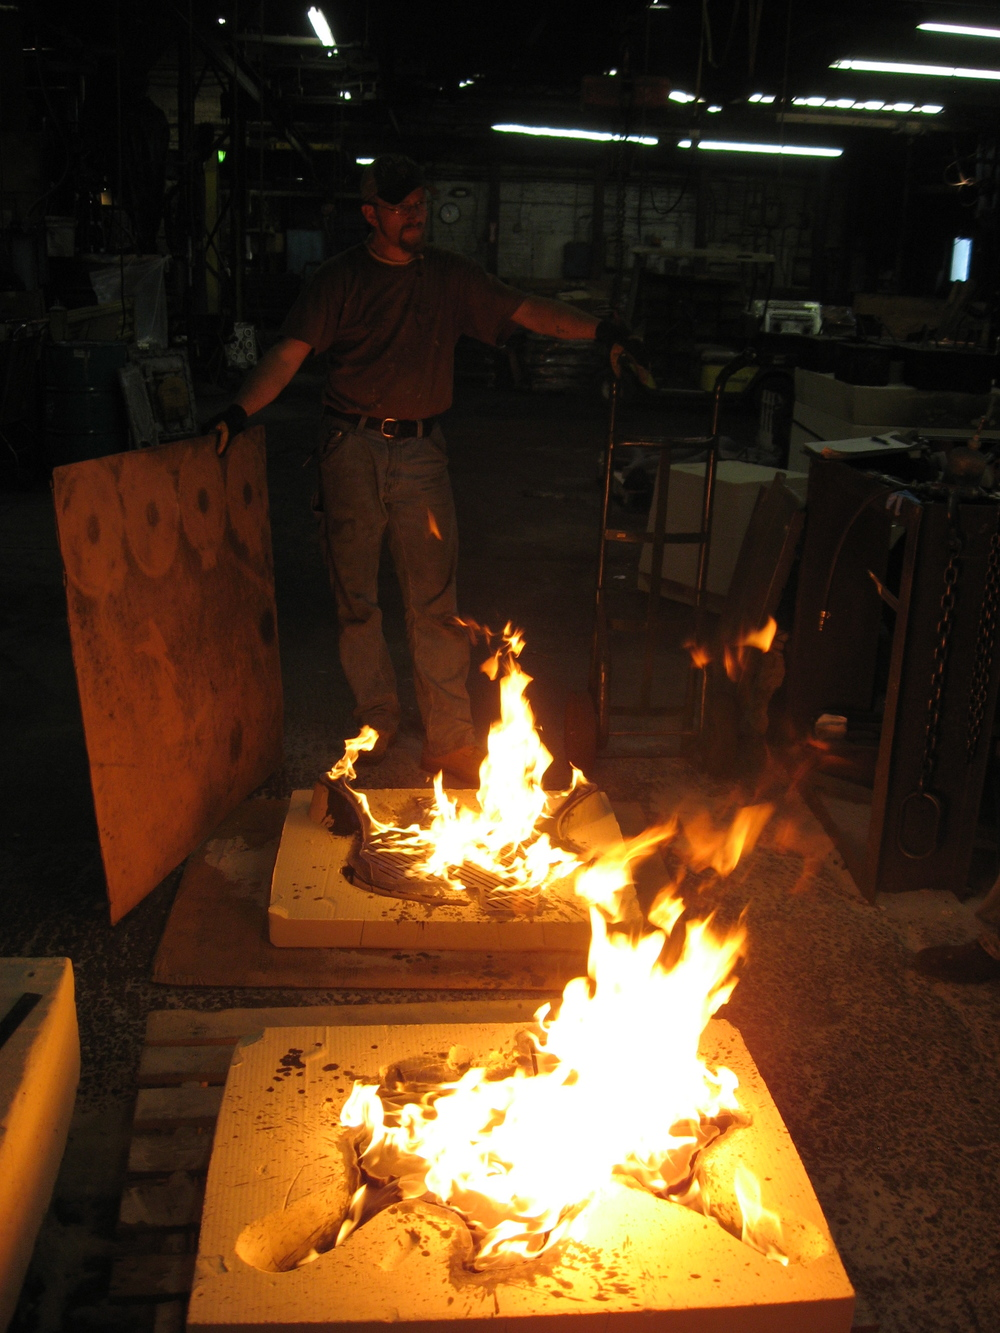 Kelly made a fire wall around the large Texas wall, so that none of these flames could get too out of control inside the foundry.